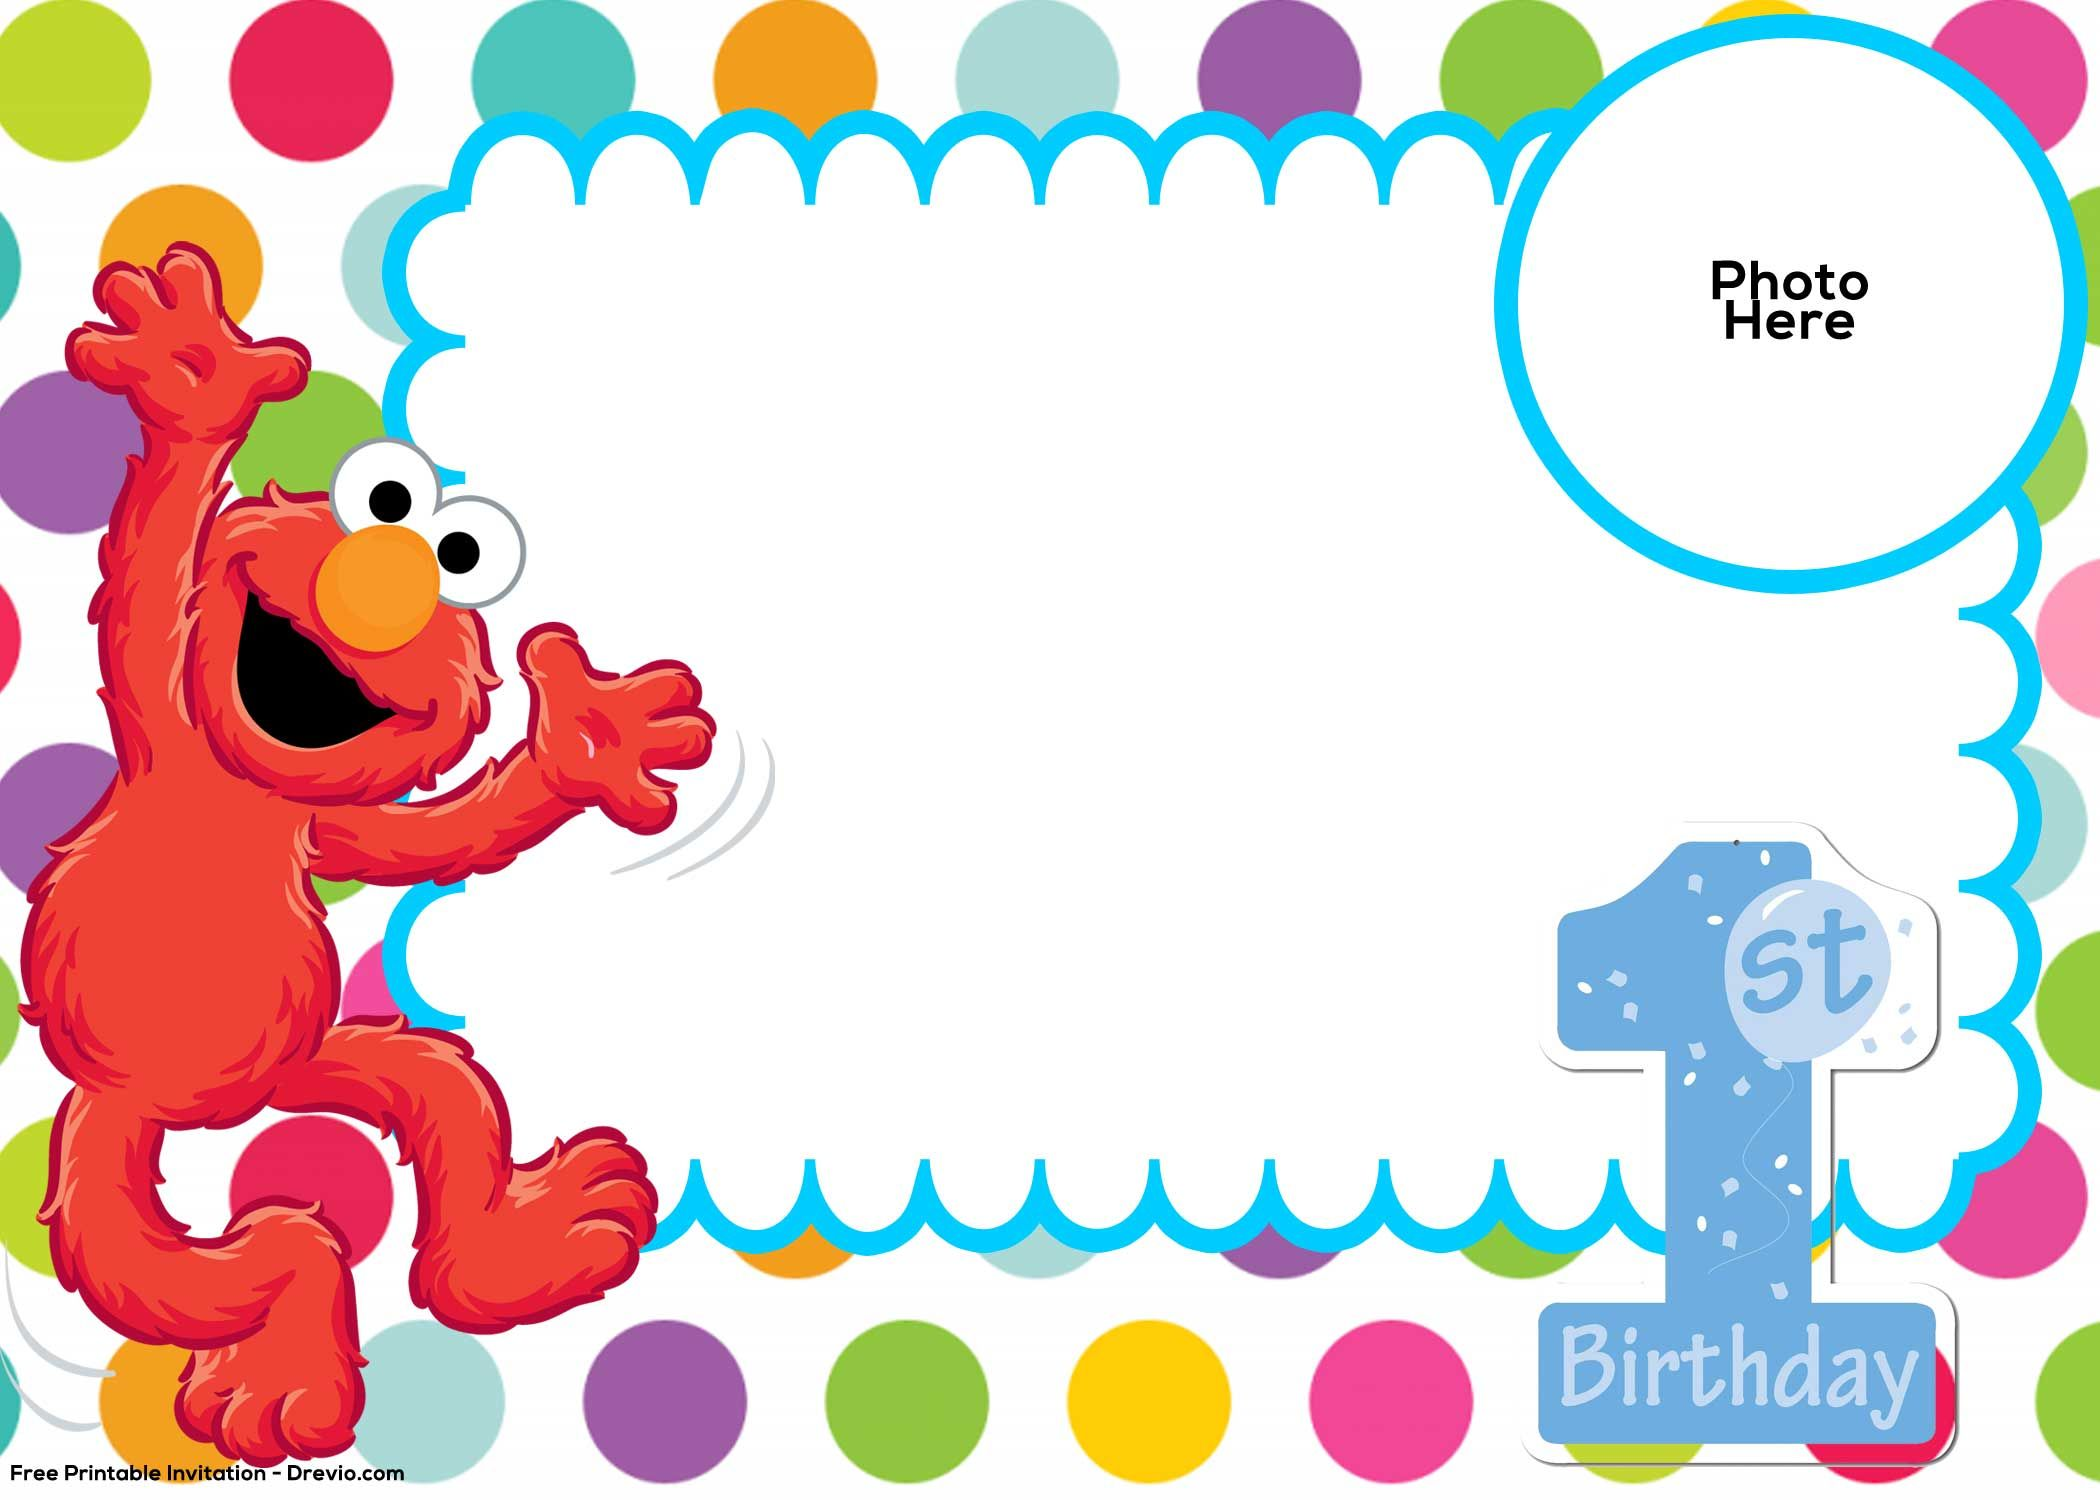 Free Sesame Street 5st Birthday Invitation Template  DREVIO